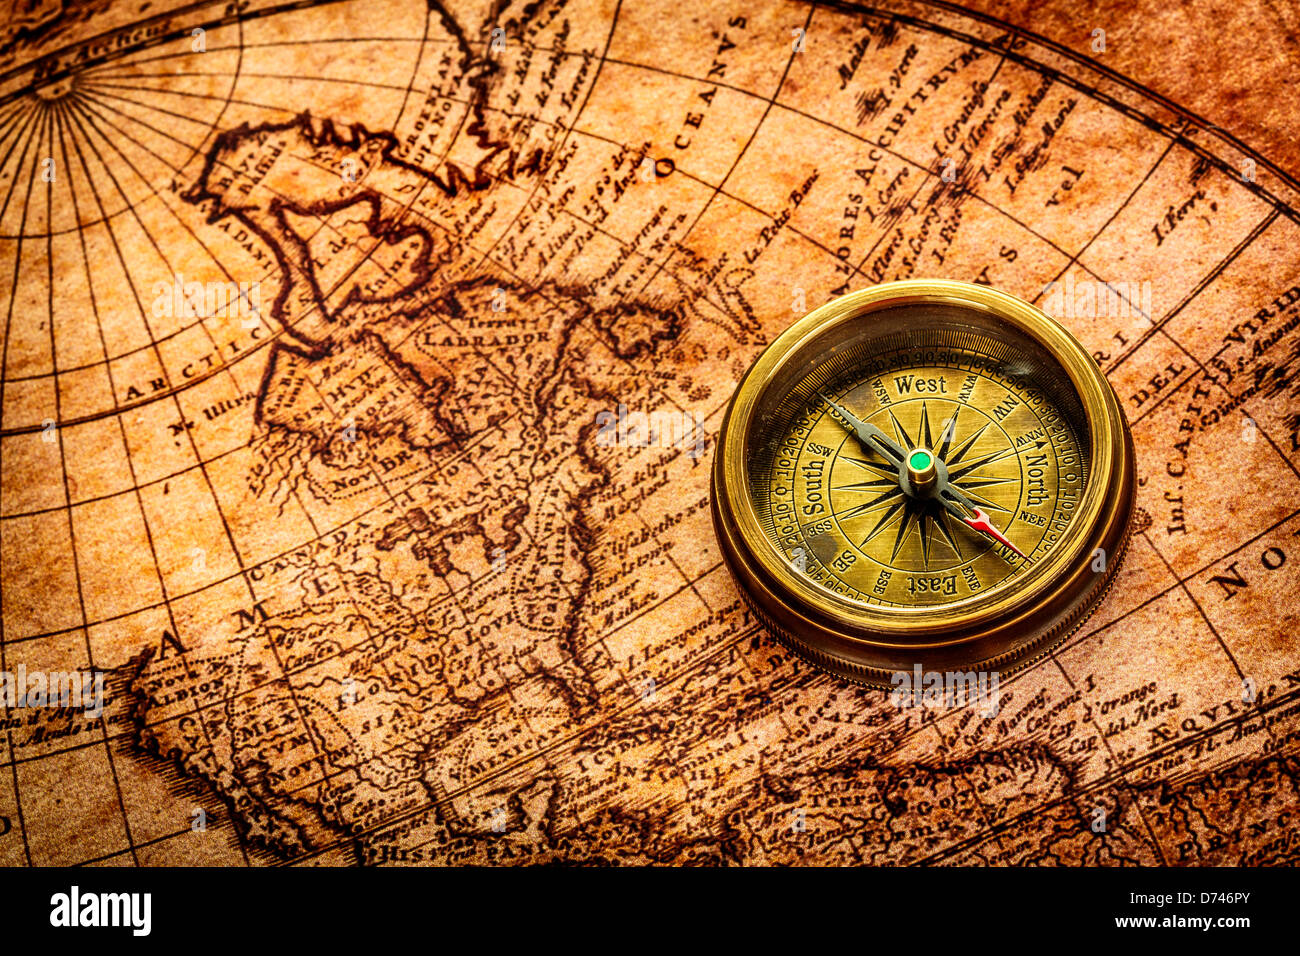 Vintage still life vintage compass lies on an ancient world map vintage compass lies on an ancient world map gumiabroncs Gallery